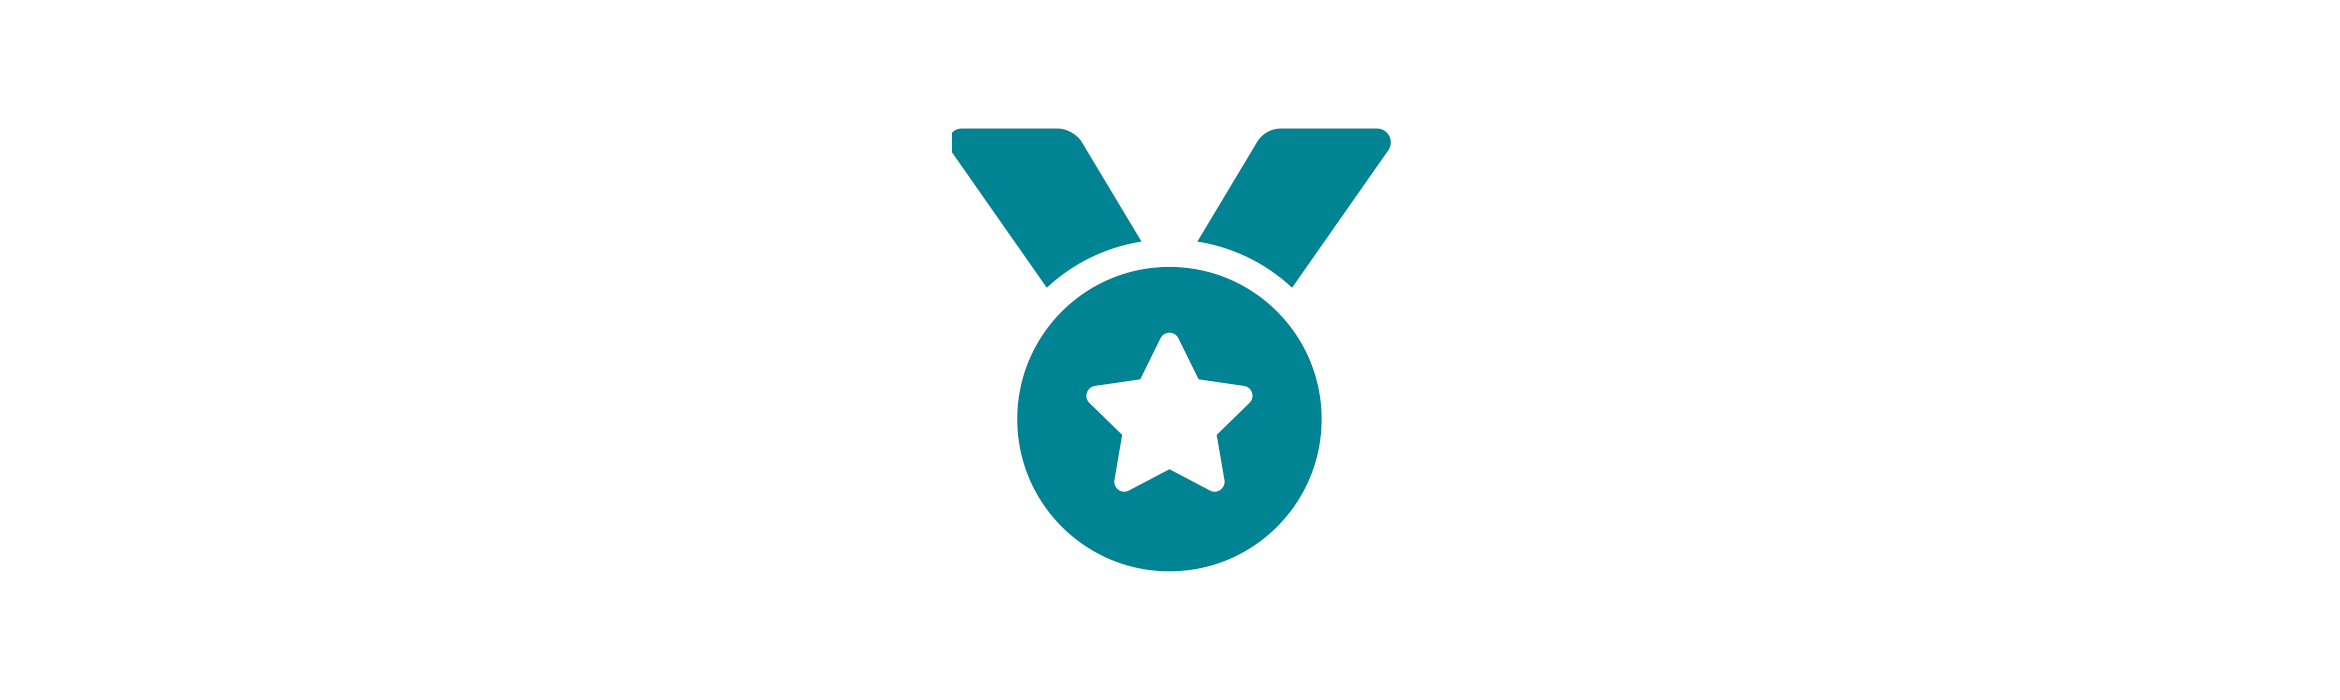 Blue medal with a star